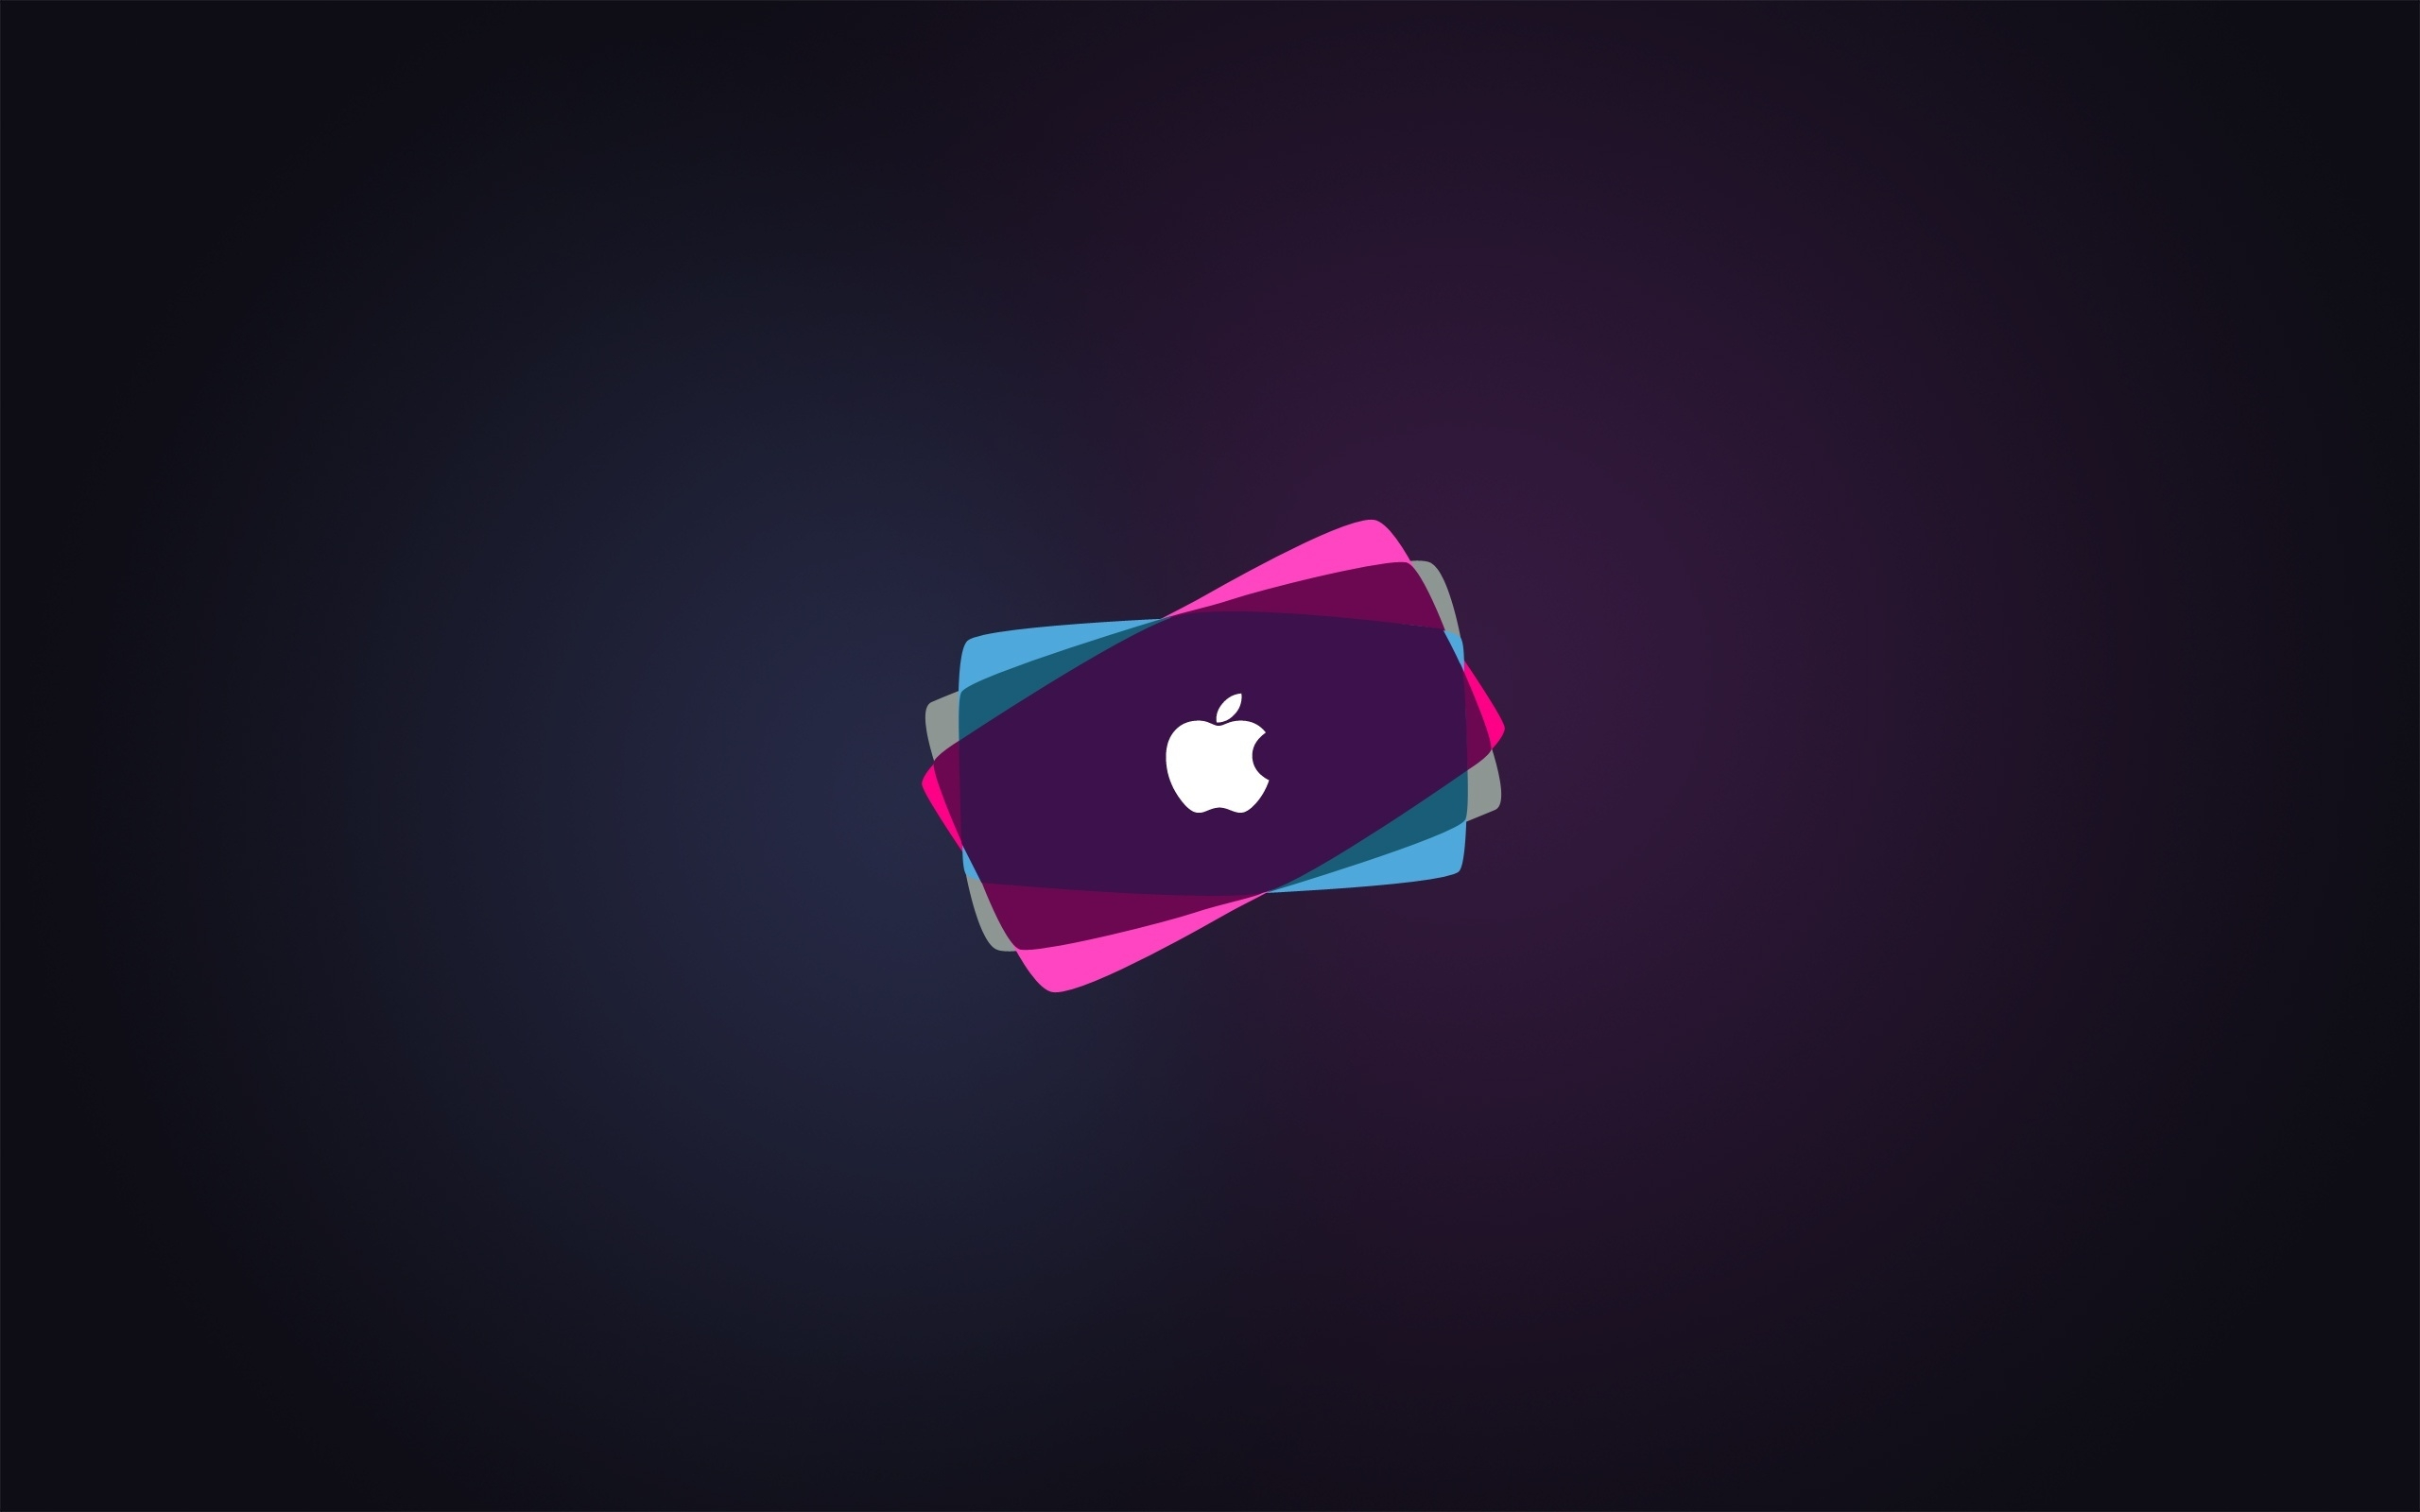 Free apple Mac Wallpapers, iMac Wallpapers, Retina MacBook Pro